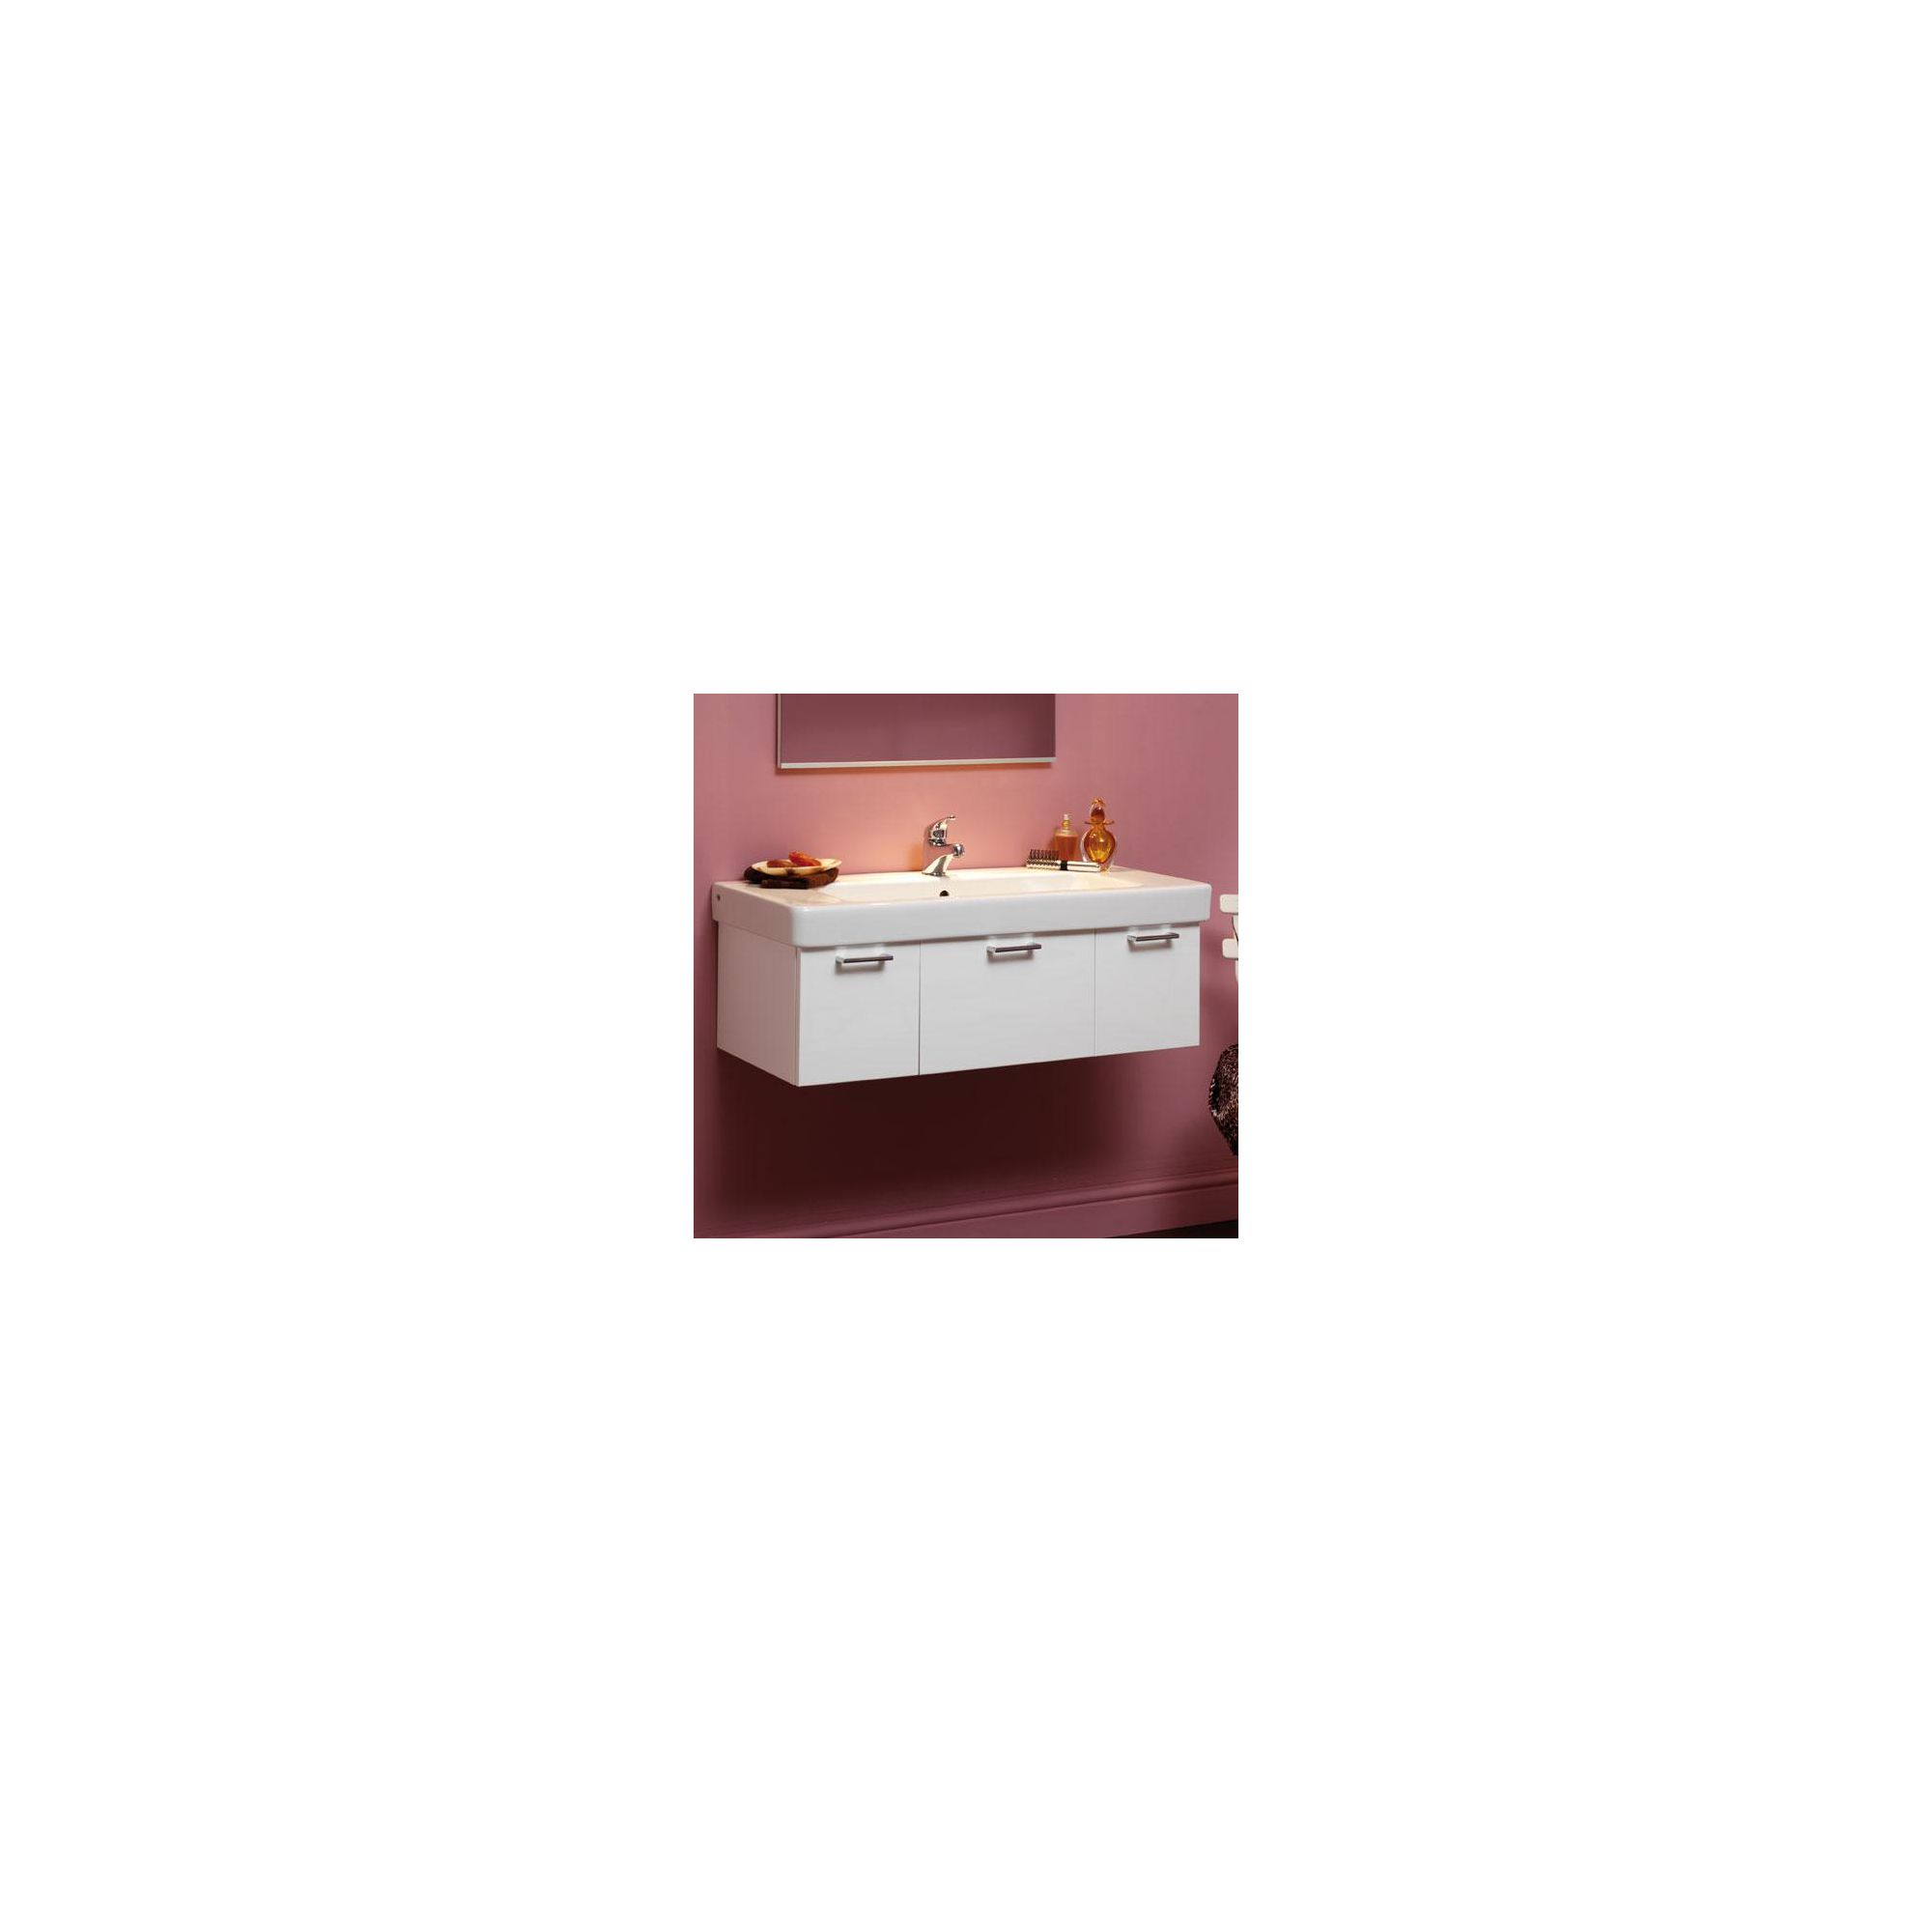 Duchy Trerise White Wall Hung 3 Drawer Vanity Unit and Single Bowl Basin - 1000mm Wide x 445mm Deep